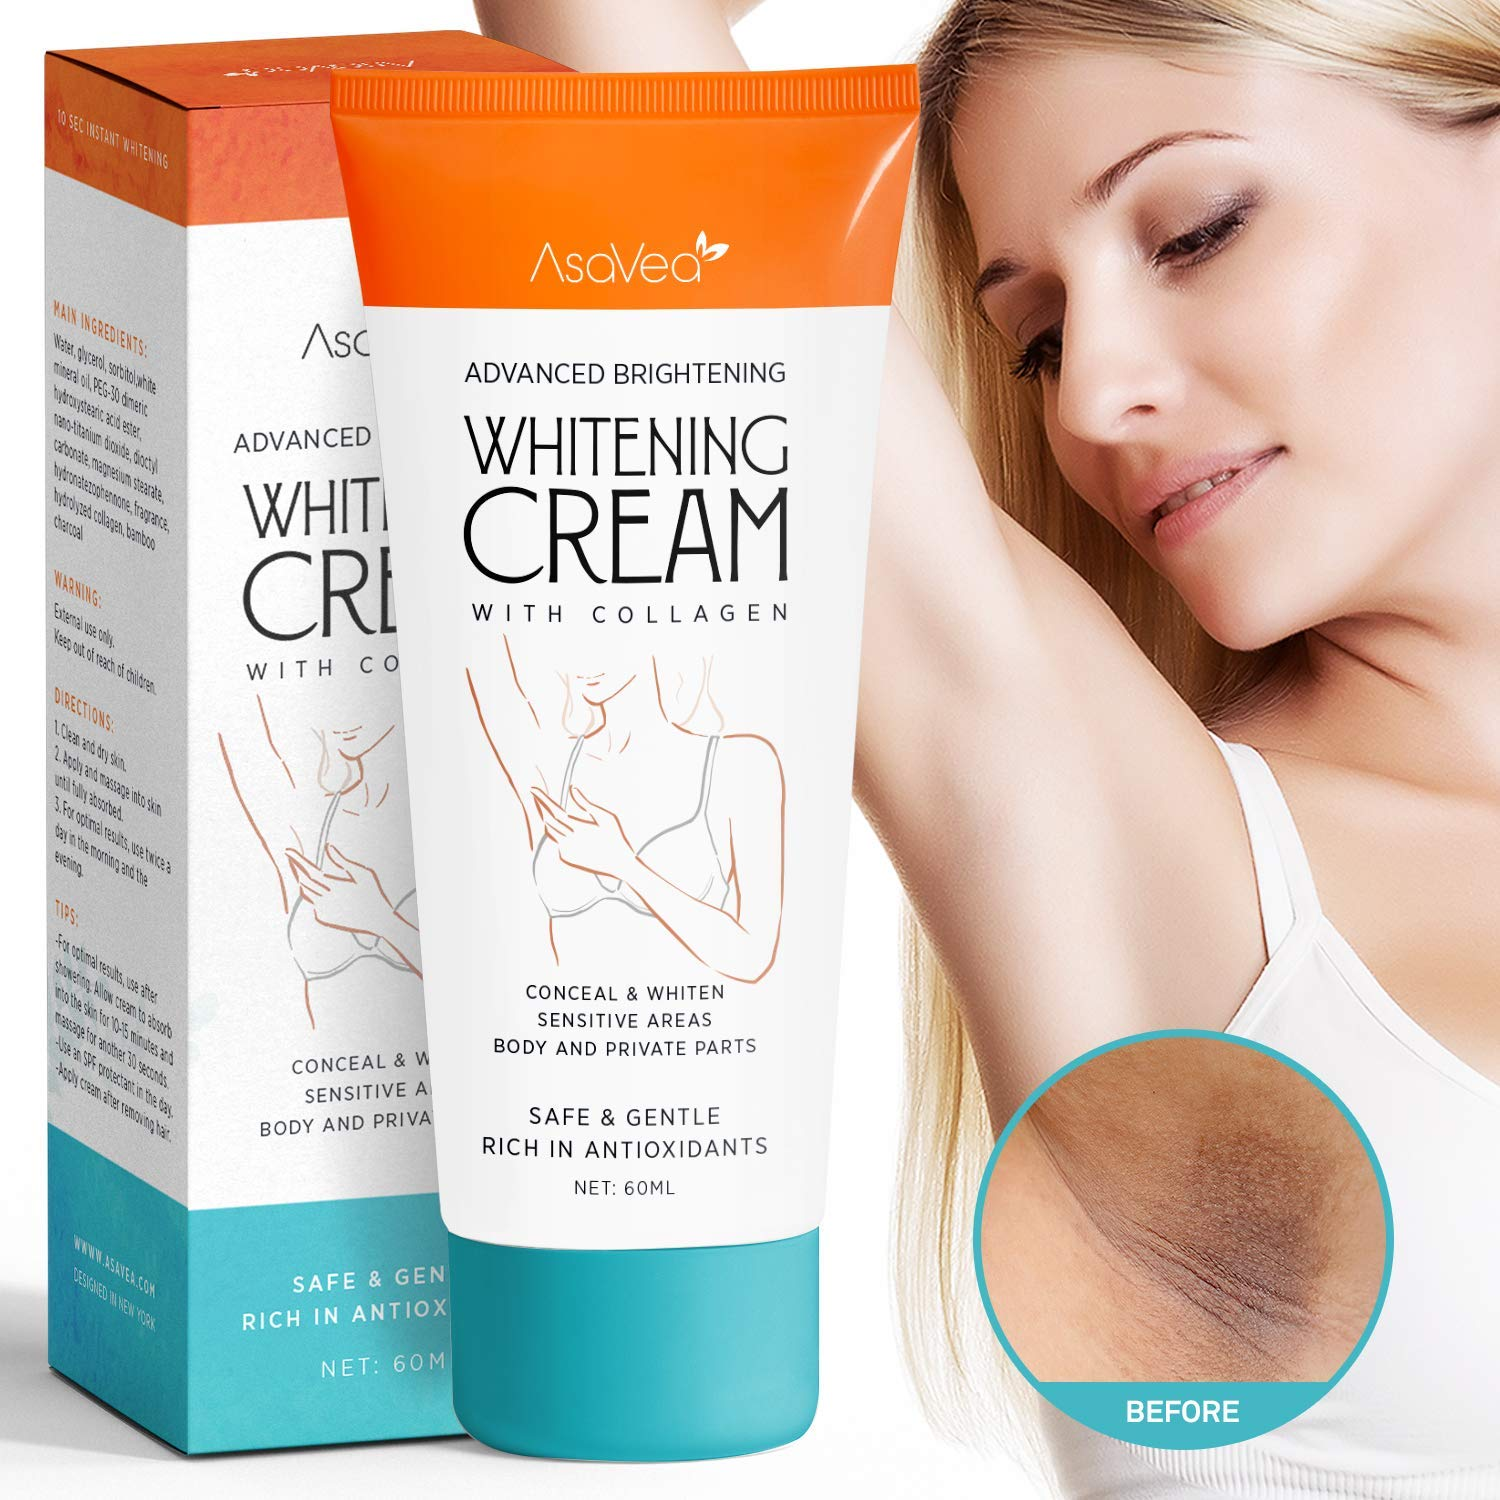 Underarm Whitening Cream,Lightening Cream Effective for Lightening & Brightening Armpit, Knees, Elbows, Sensitive & Private Areas, Whitens, Nourishes, Repairs & Restores Skin by Asavea by AsaVea